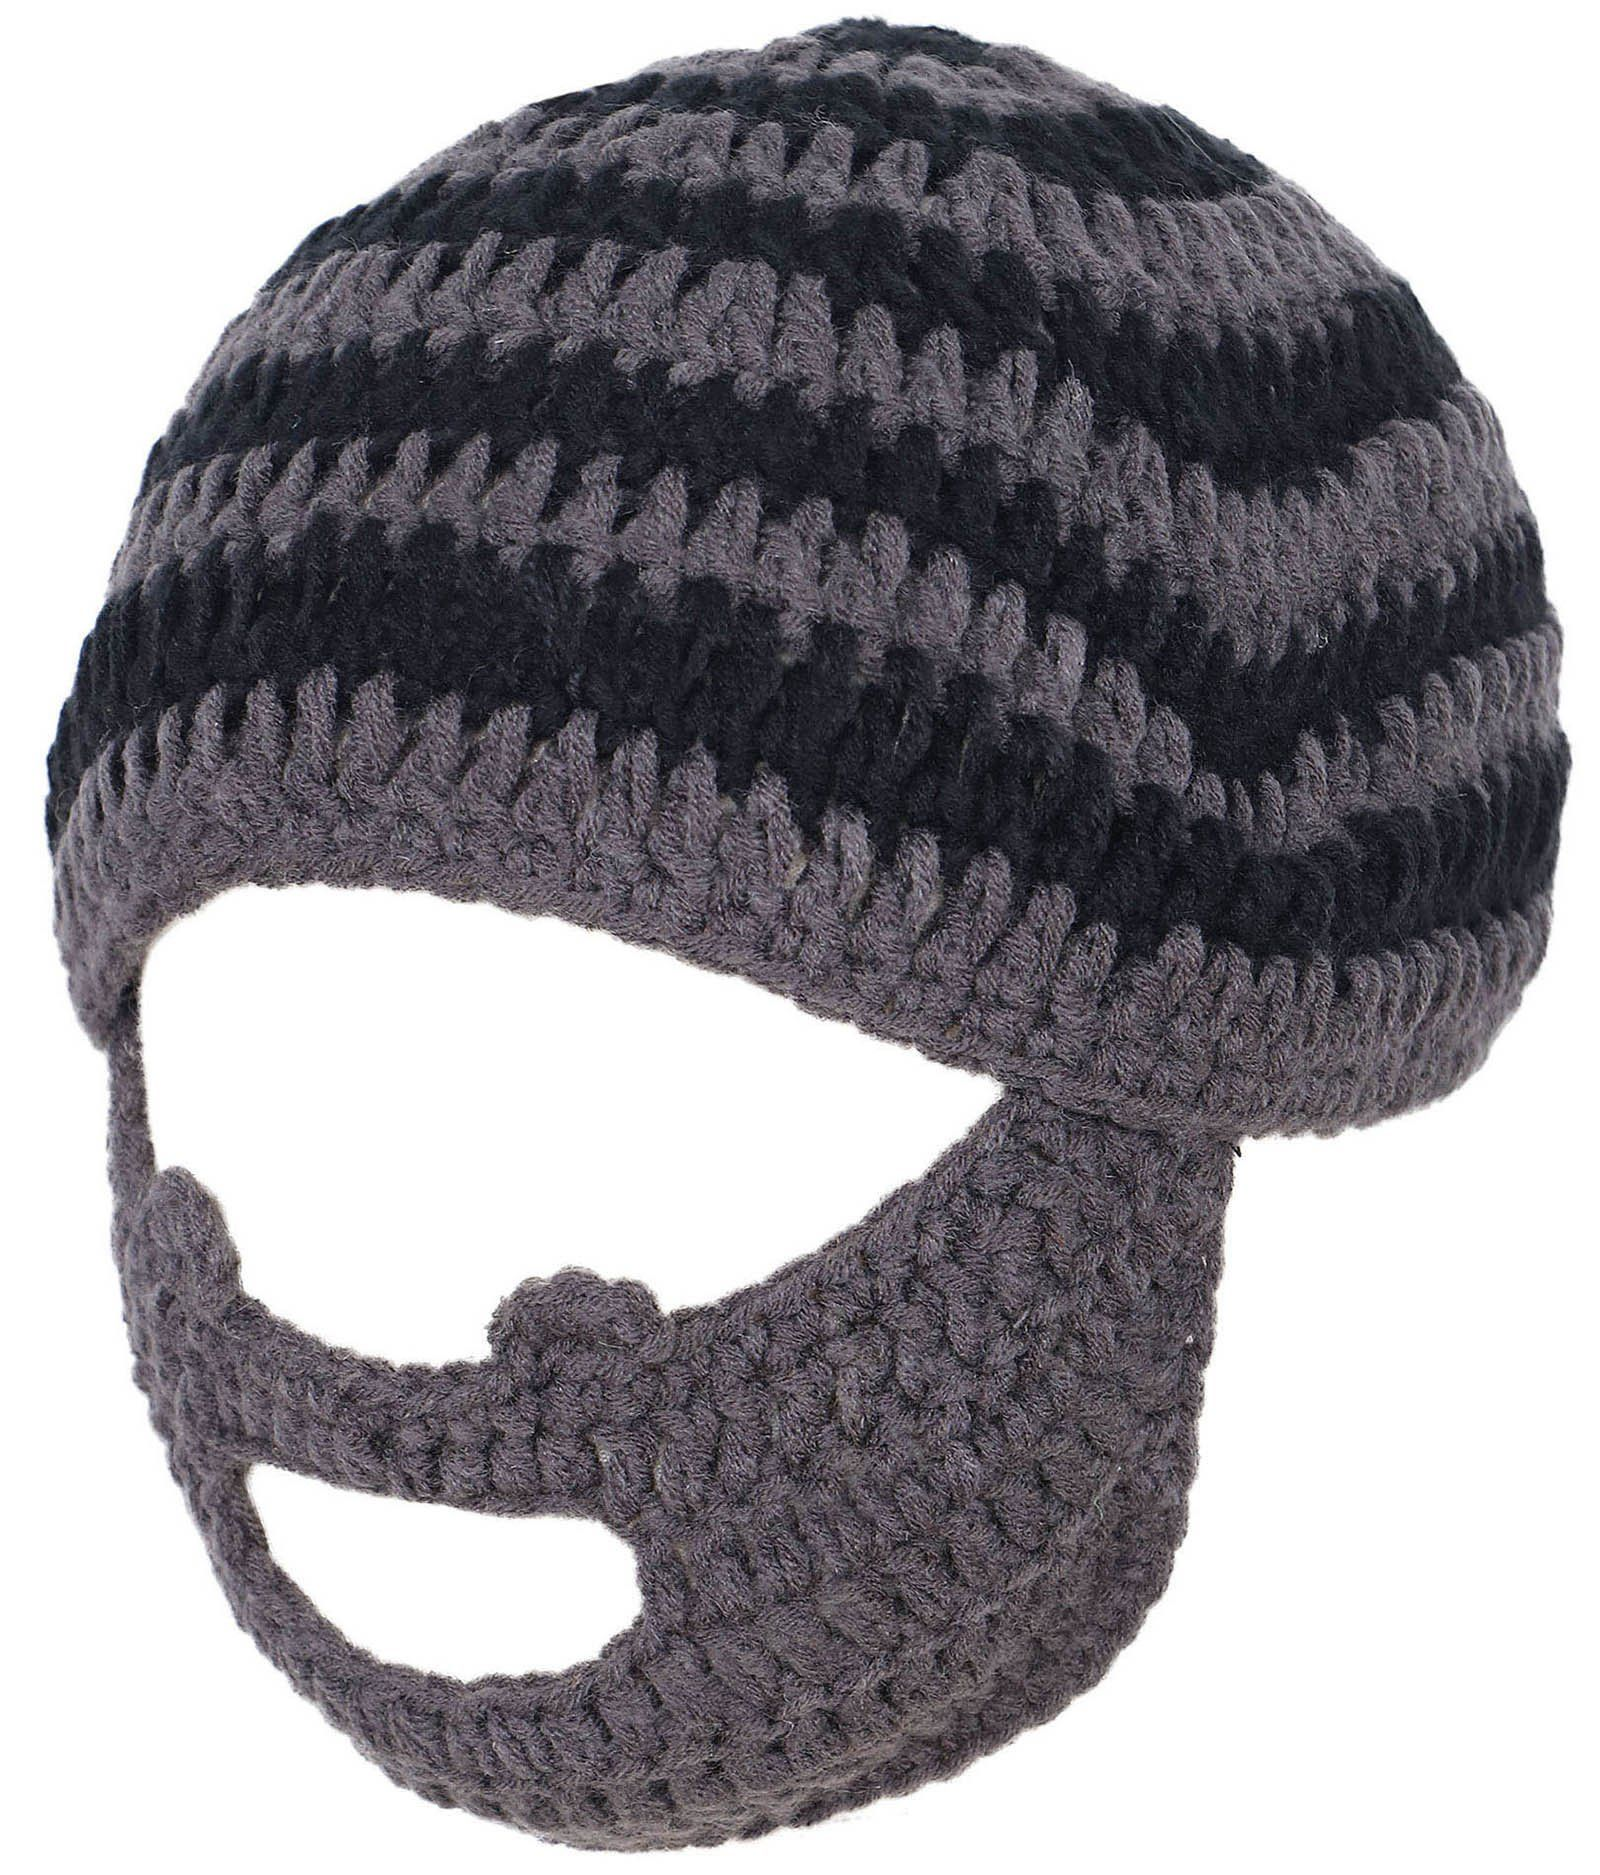 Winter Funny Party Hat Crochet Knit Beard Beanie Ski Mask Cap, Gray ...